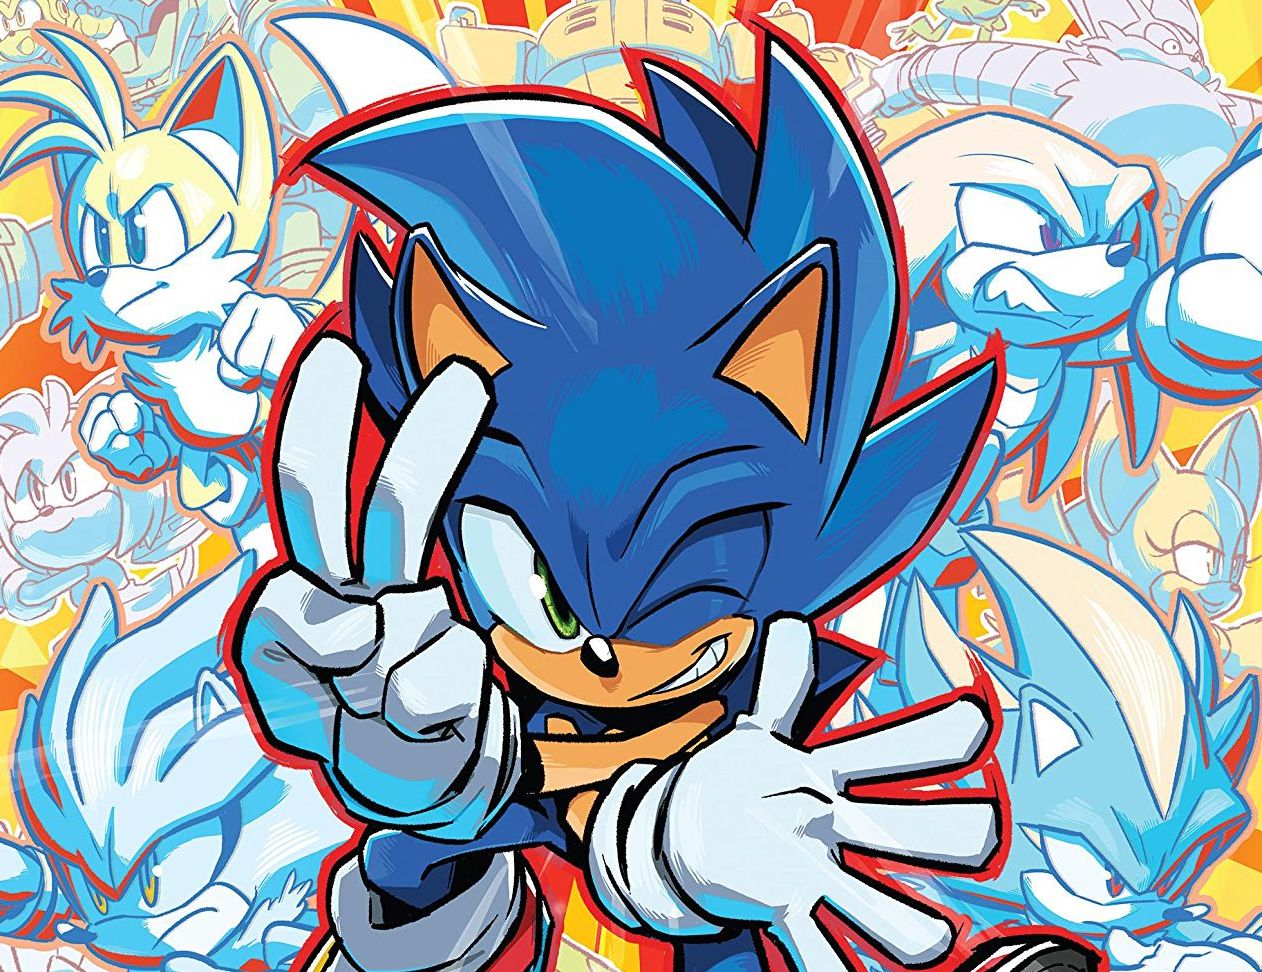 Sonic the Hedgehog #25 Review